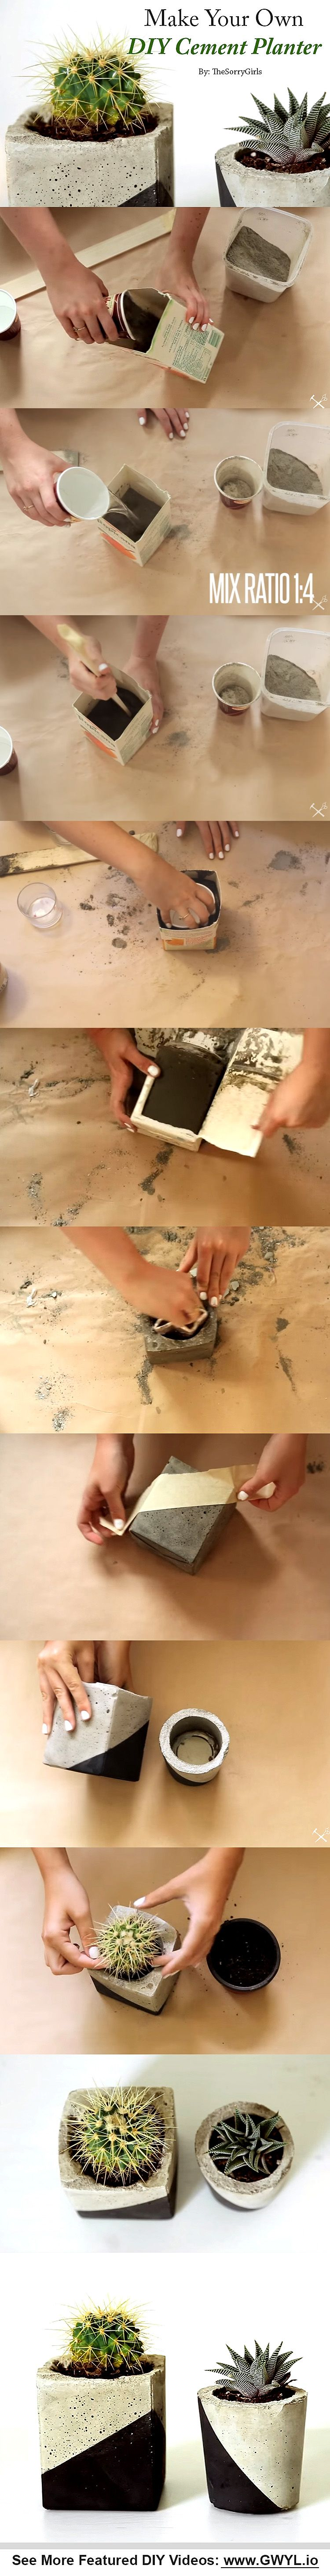 On this project, the materials used are recycled materials like small milk cartons and old plastic food containers. See video and written instructions here==> | Make Your Own DIY Cement Planter | http://gwyl.io/make-diy-cement-planter/